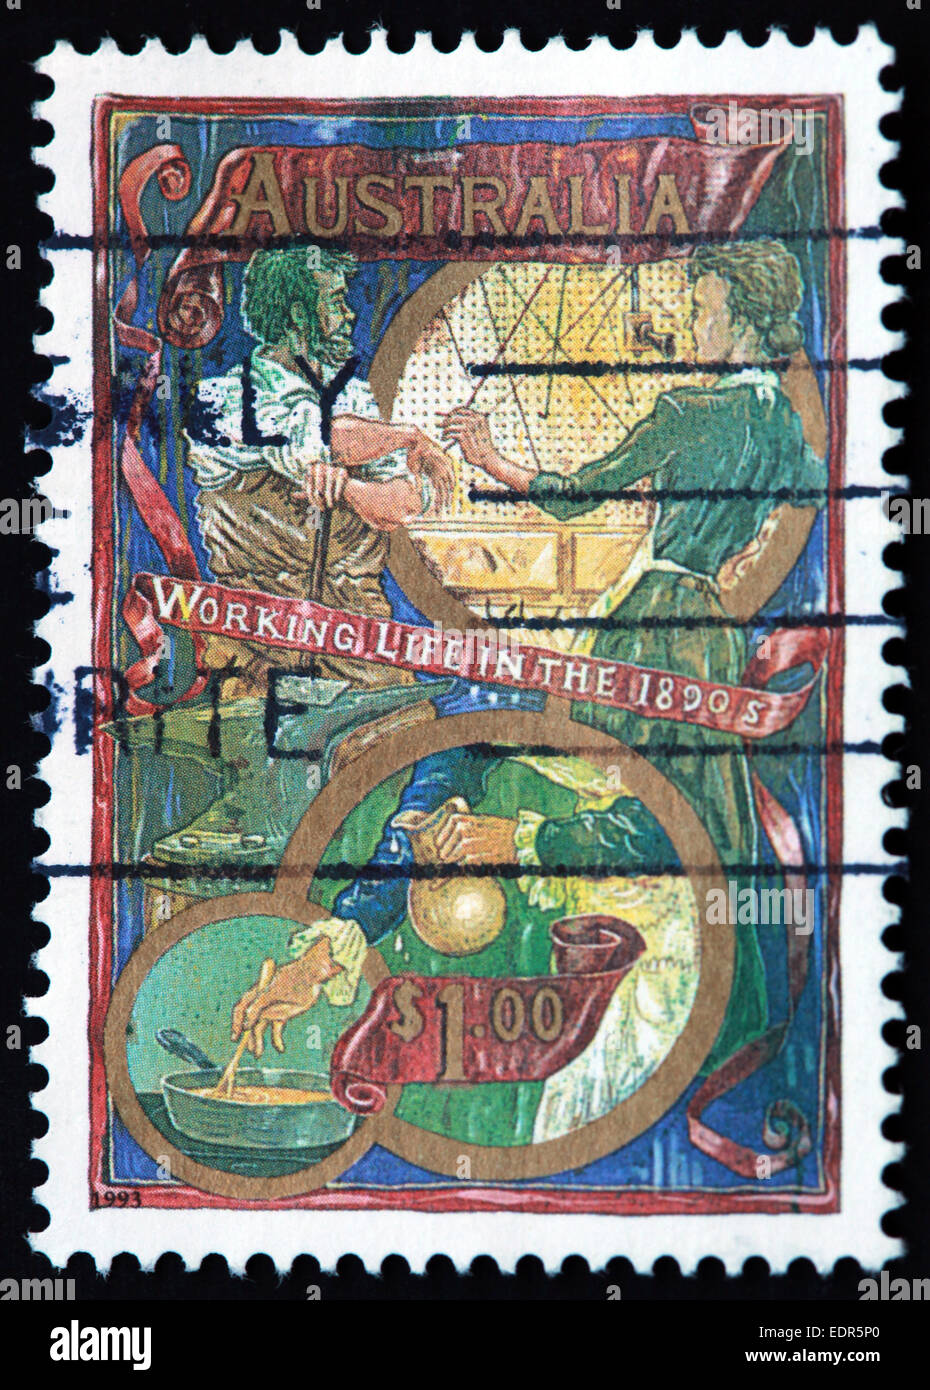 Used and postmarked Australia / Austrailian Stamp $1 working life in the 1890s 1993 - Stock Image